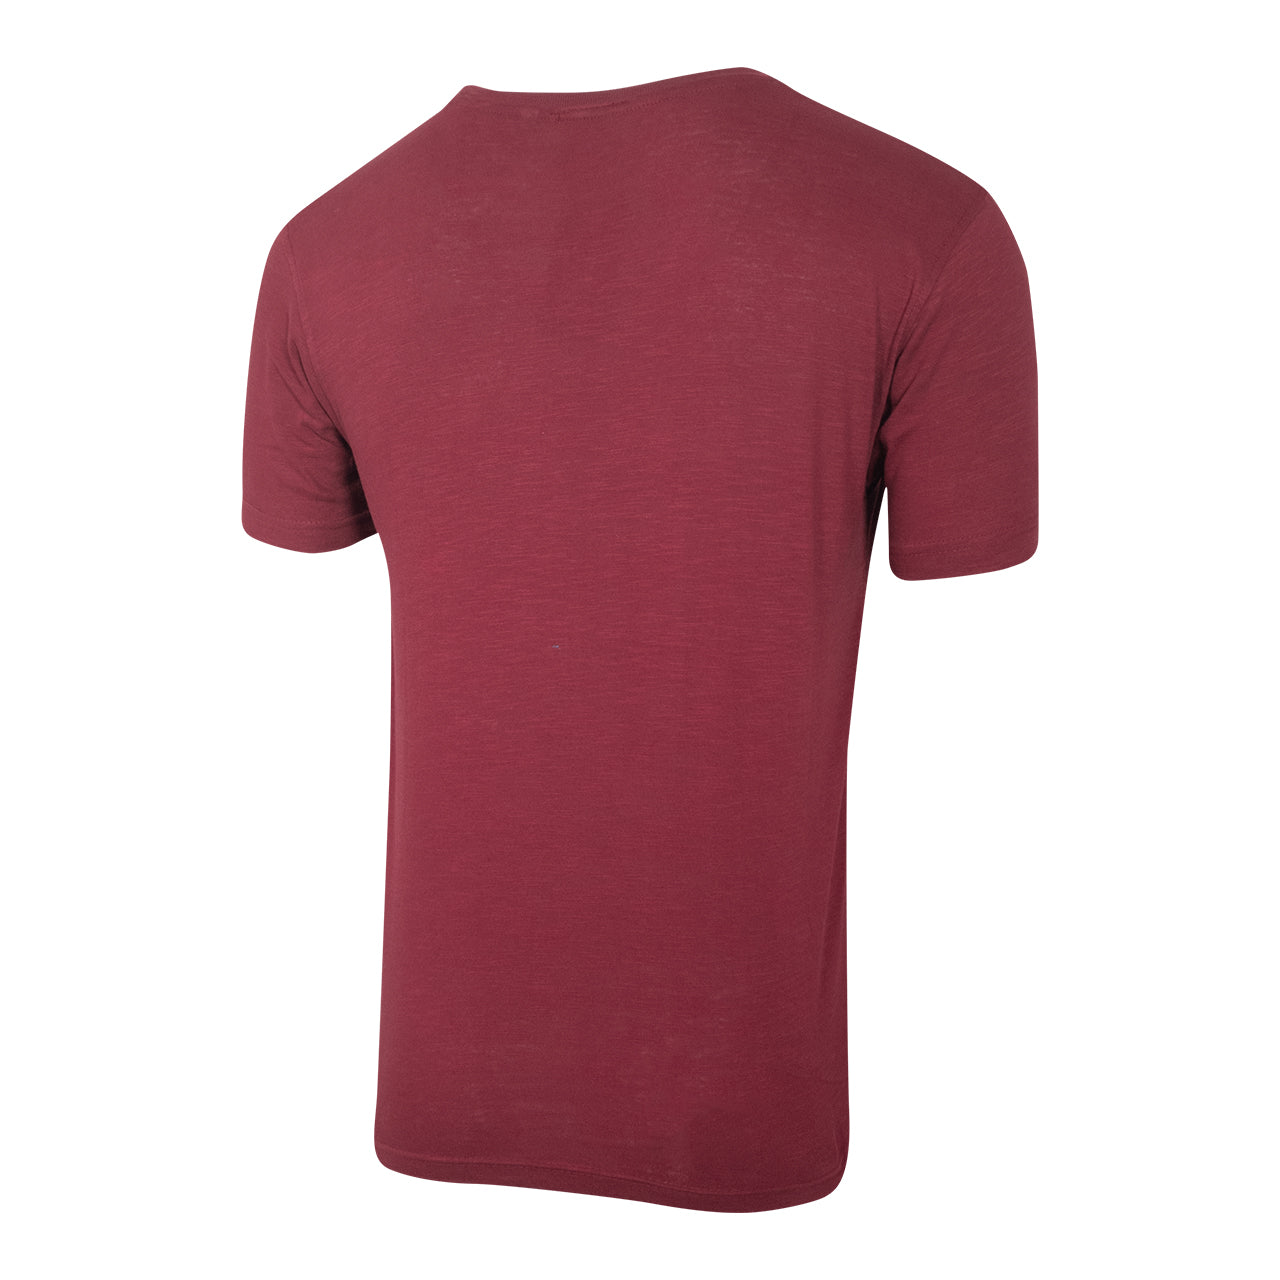 NFFC Mens Burgundy Essential Grafton T-Shirt